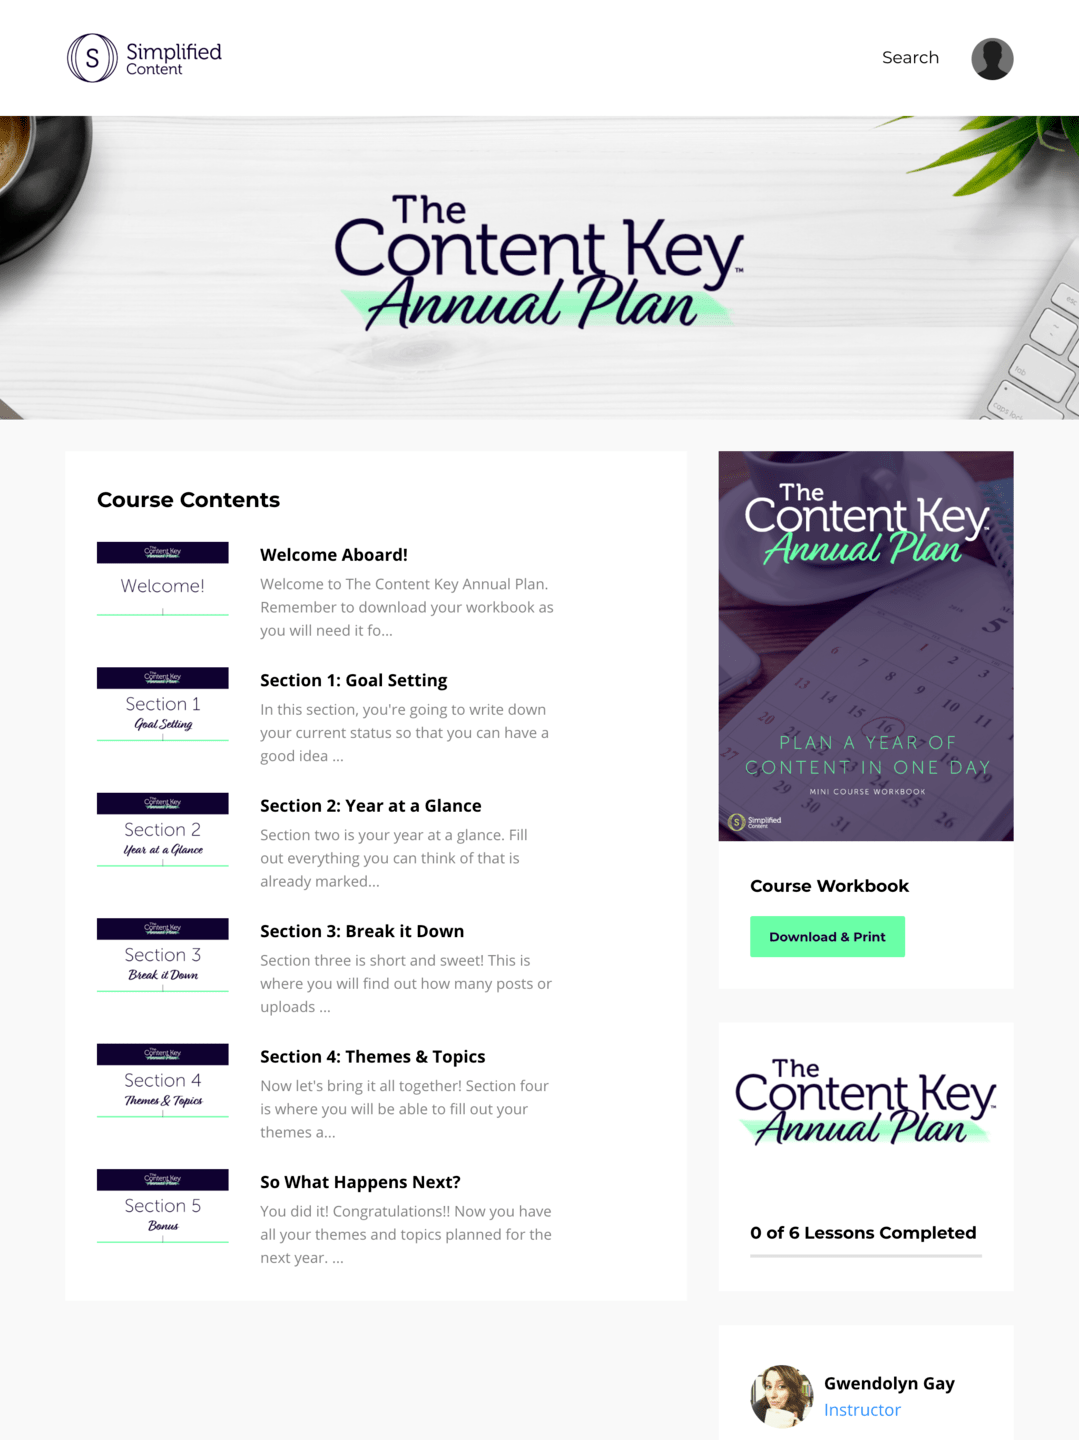 The Content Key Annual Plan